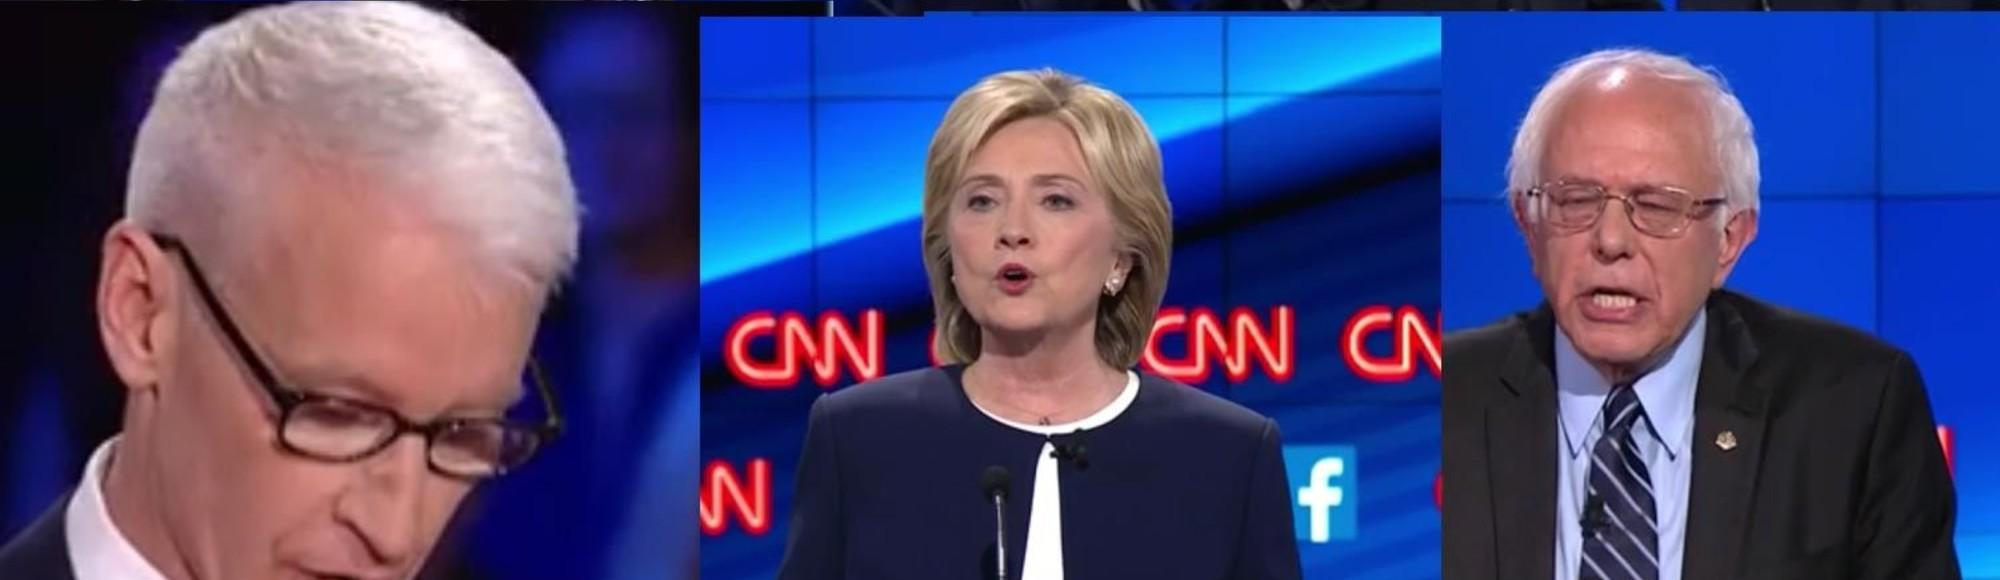 VICE Liveblogs the First Democratic Presidential Debate